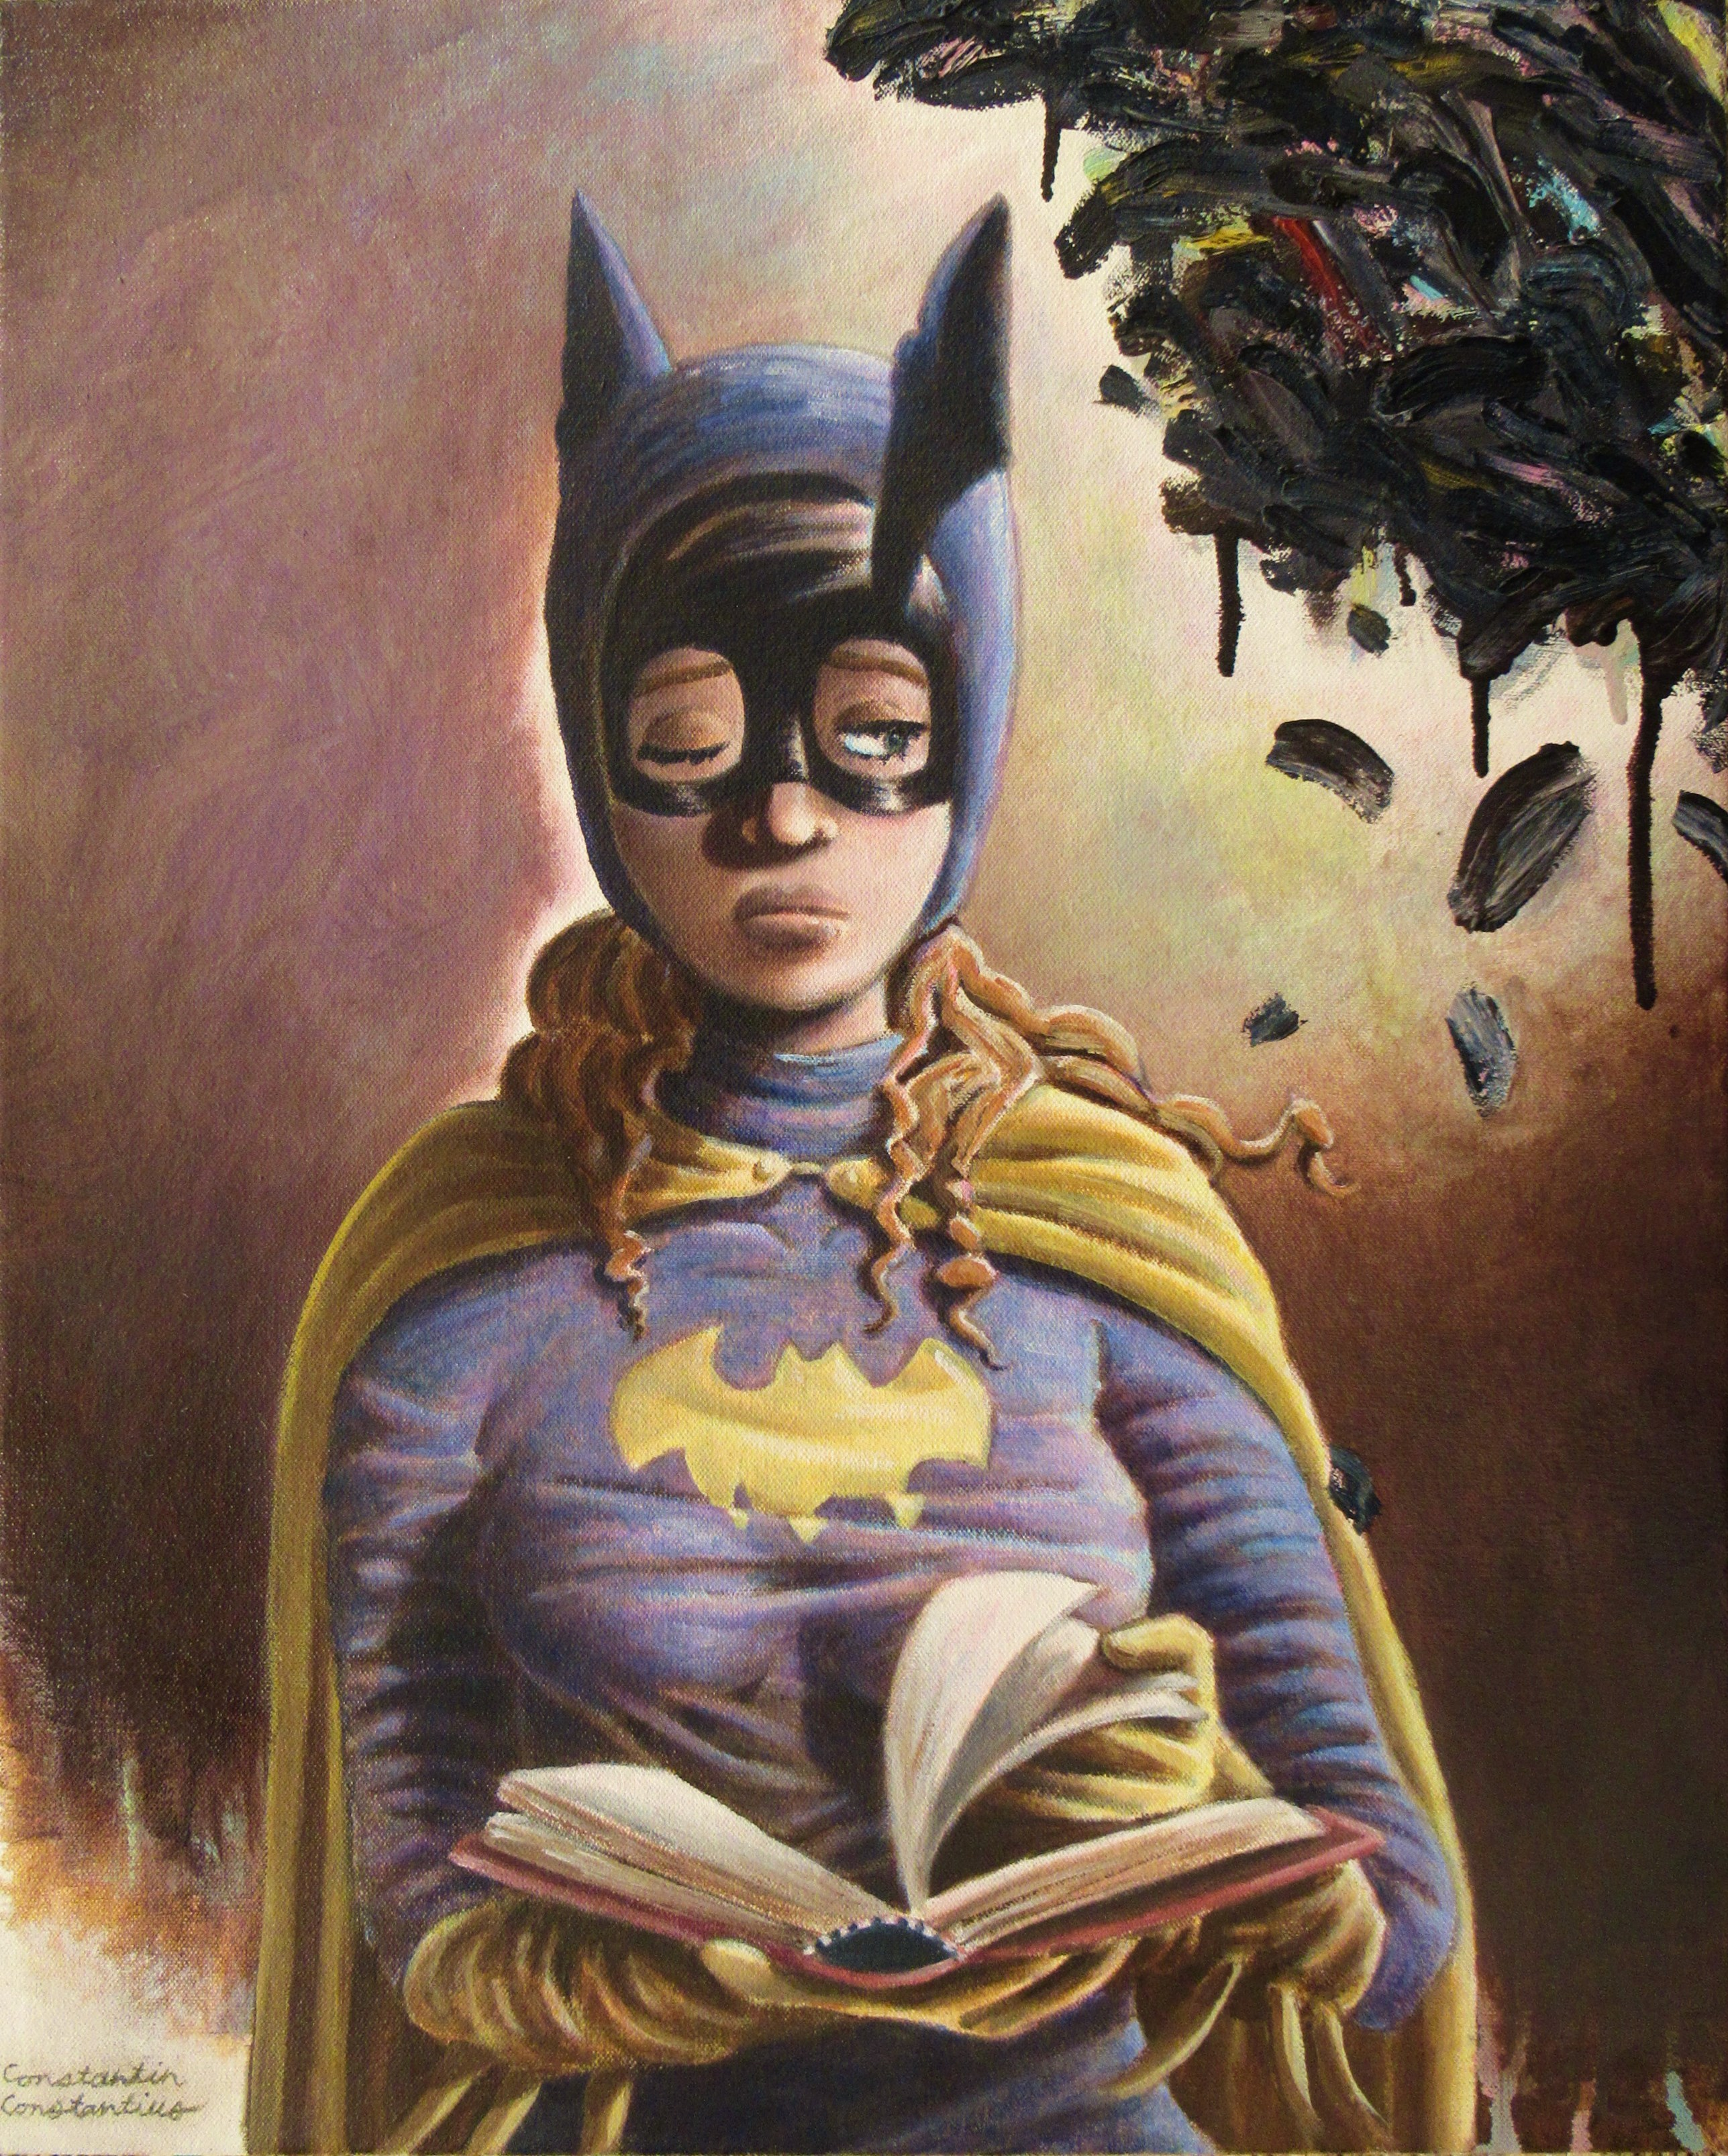 """""""Repetition #17: Portrait of Batgirl,"""" Oil on Canvas, 20 x 16 in, Jul-Aug 2019"""